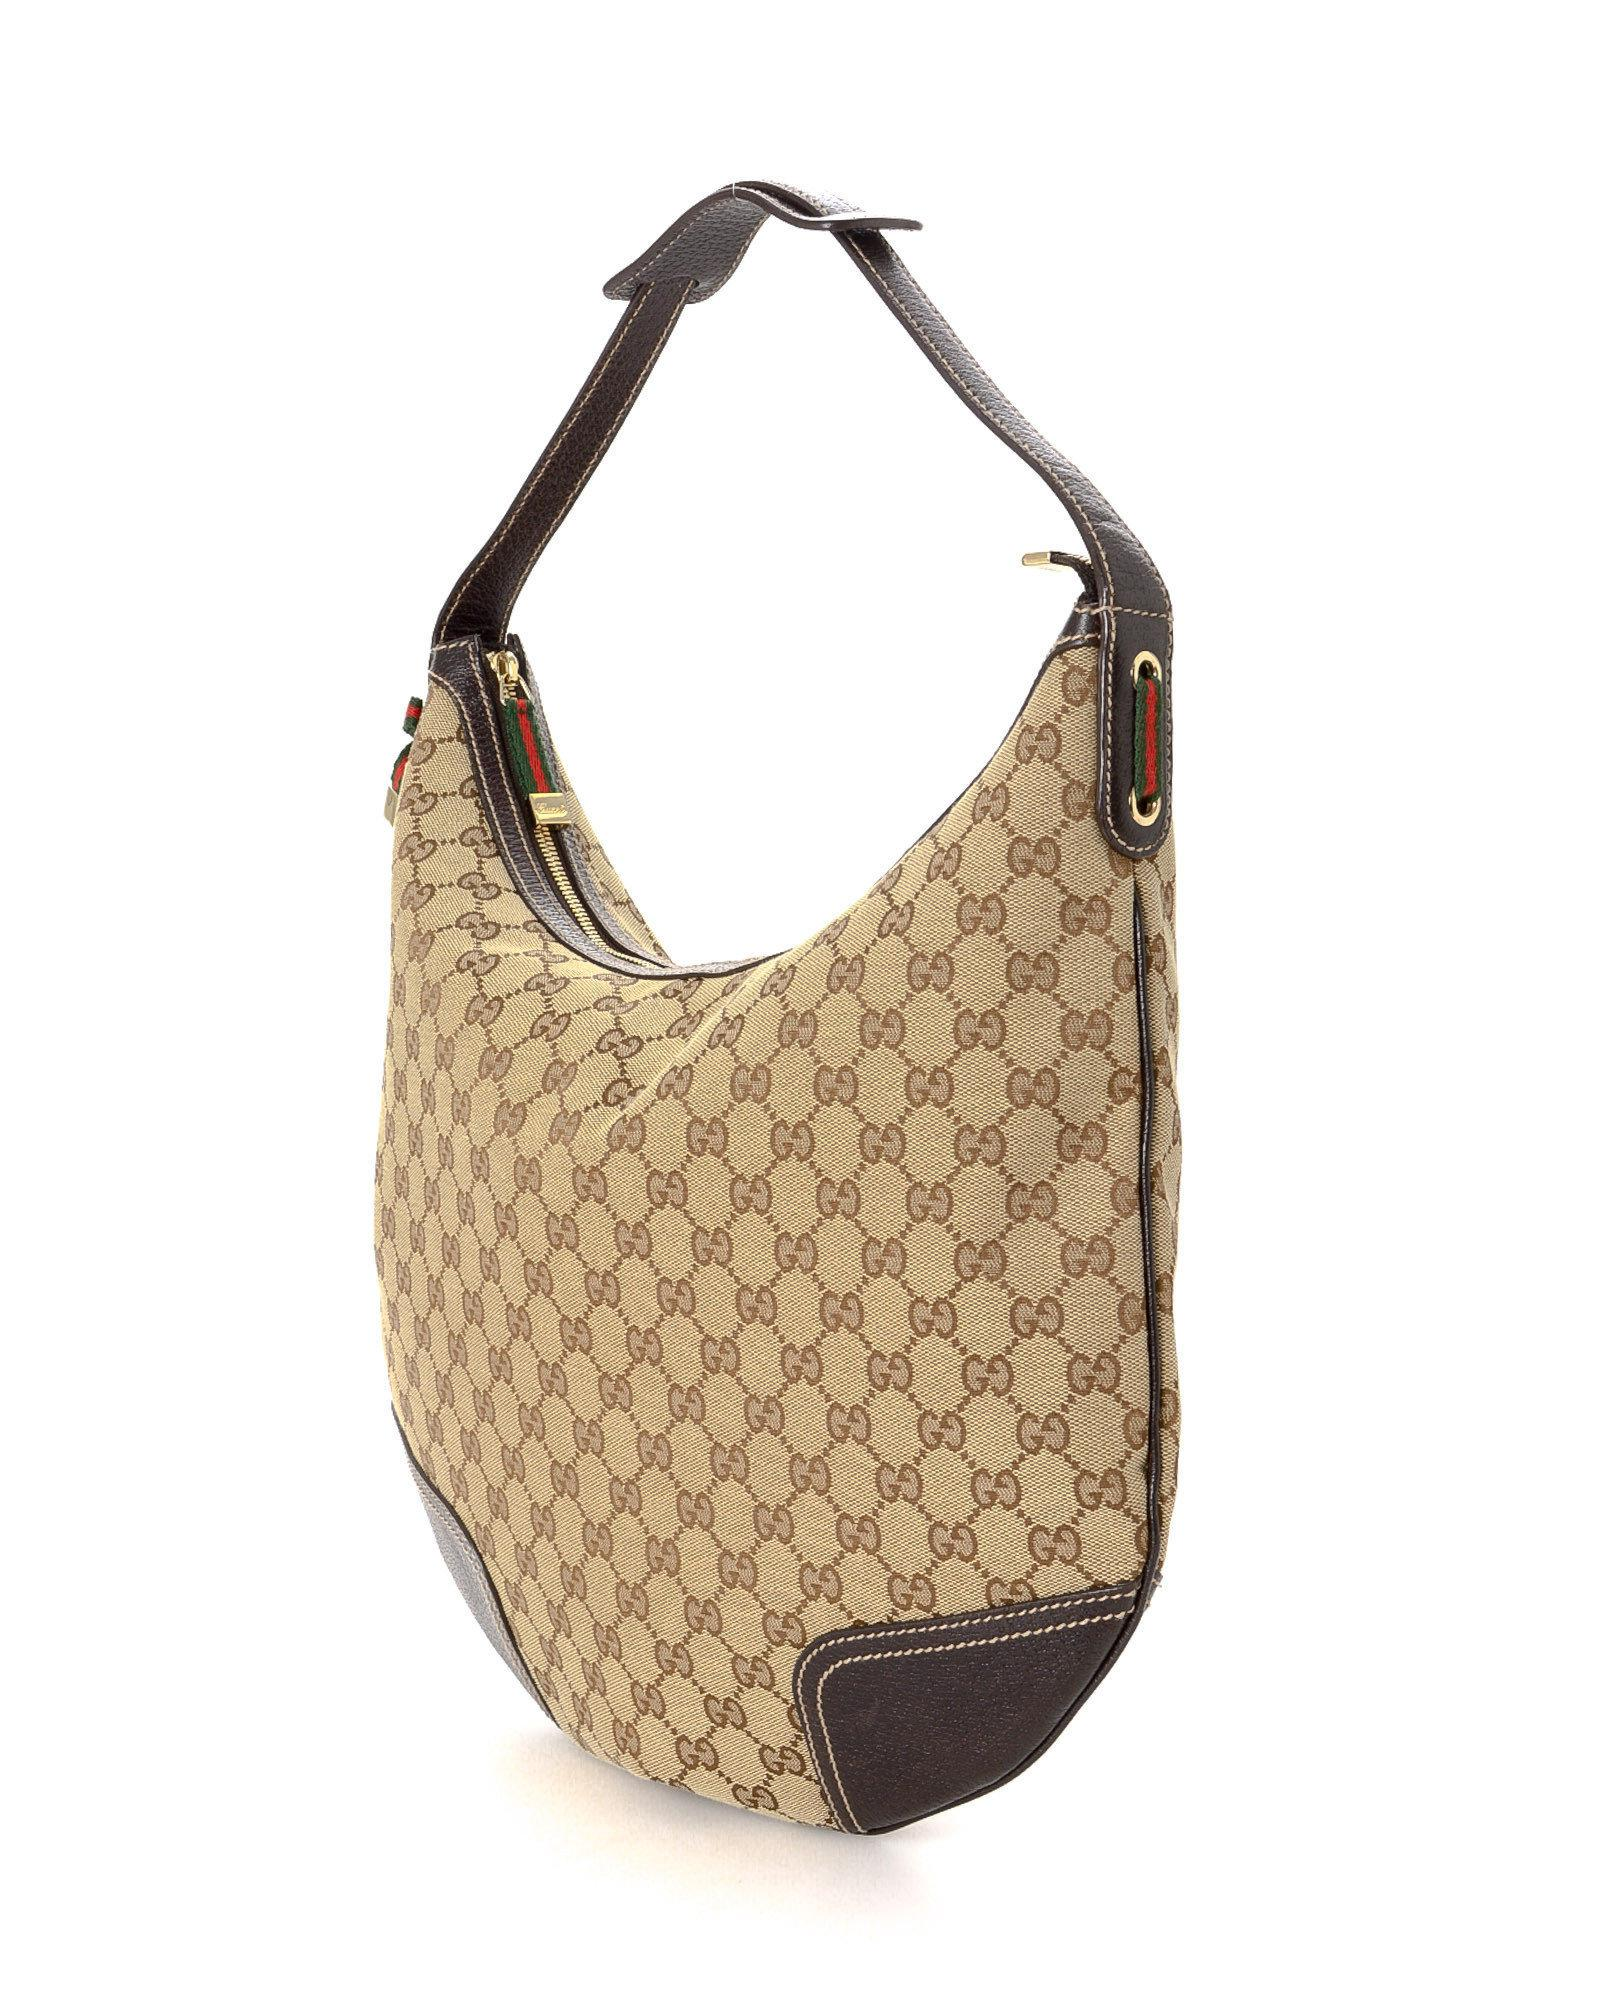 7731f75a4fd Lyst - Gucci Princy Hobo Bag - Vintage in Natural